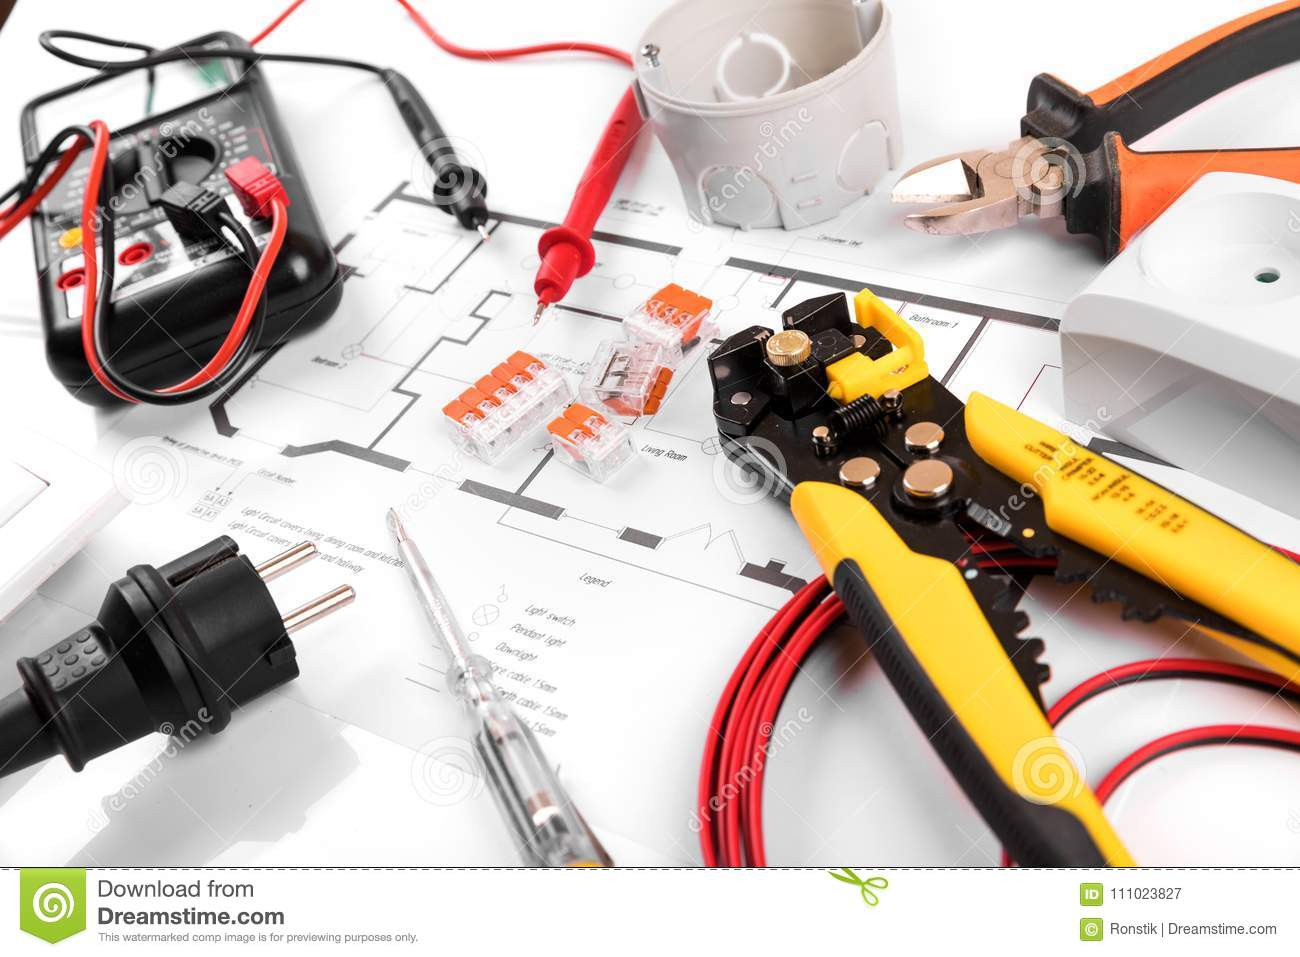 electrical tools and equipment on house circuit diagram stock image house exterior diagram electrical tools and equipment on house circuit diagram